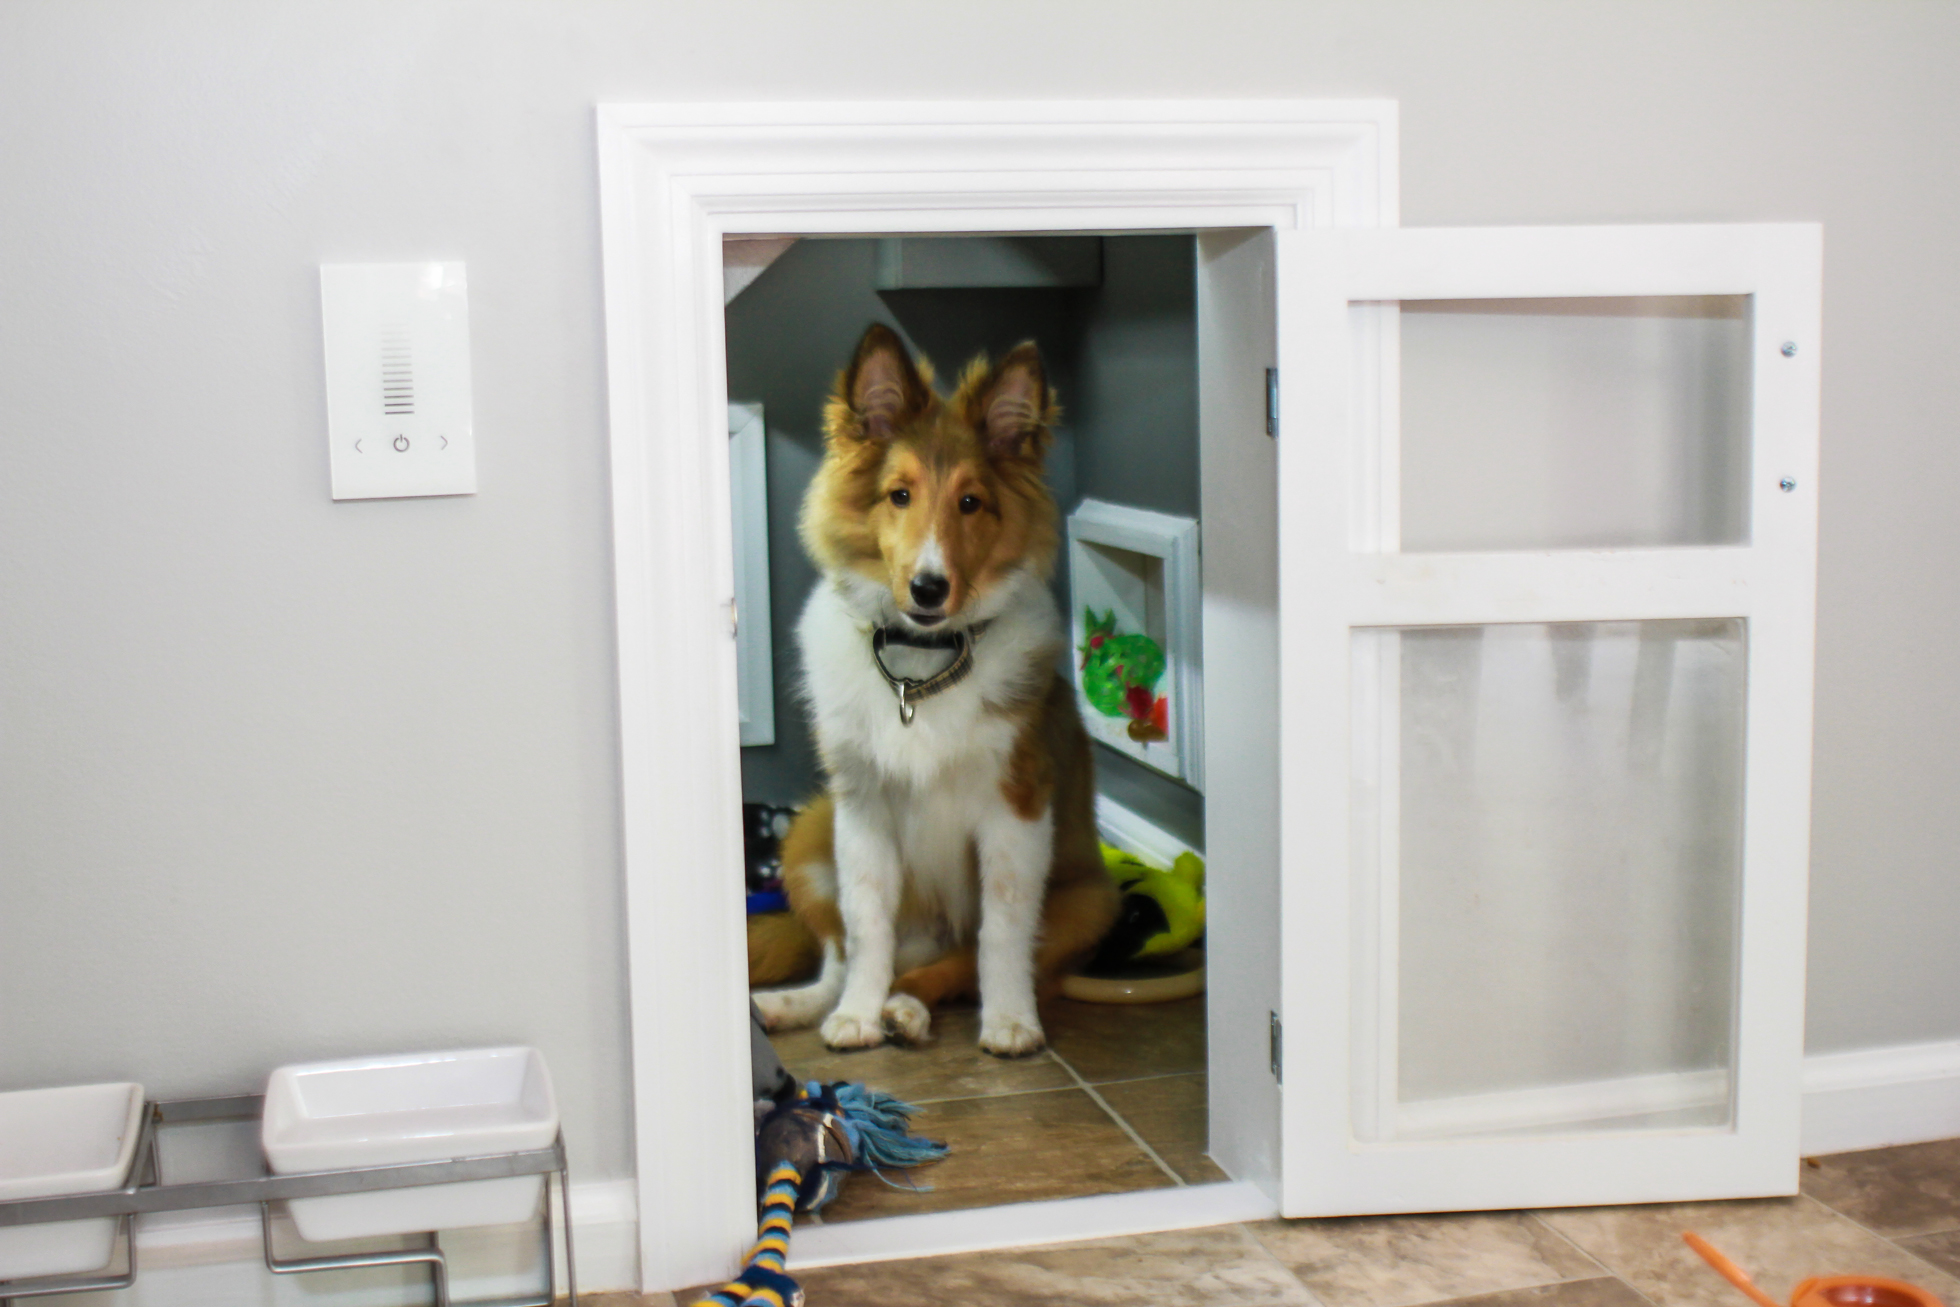 Sheltie dog sitting in a built-in dog house in a home